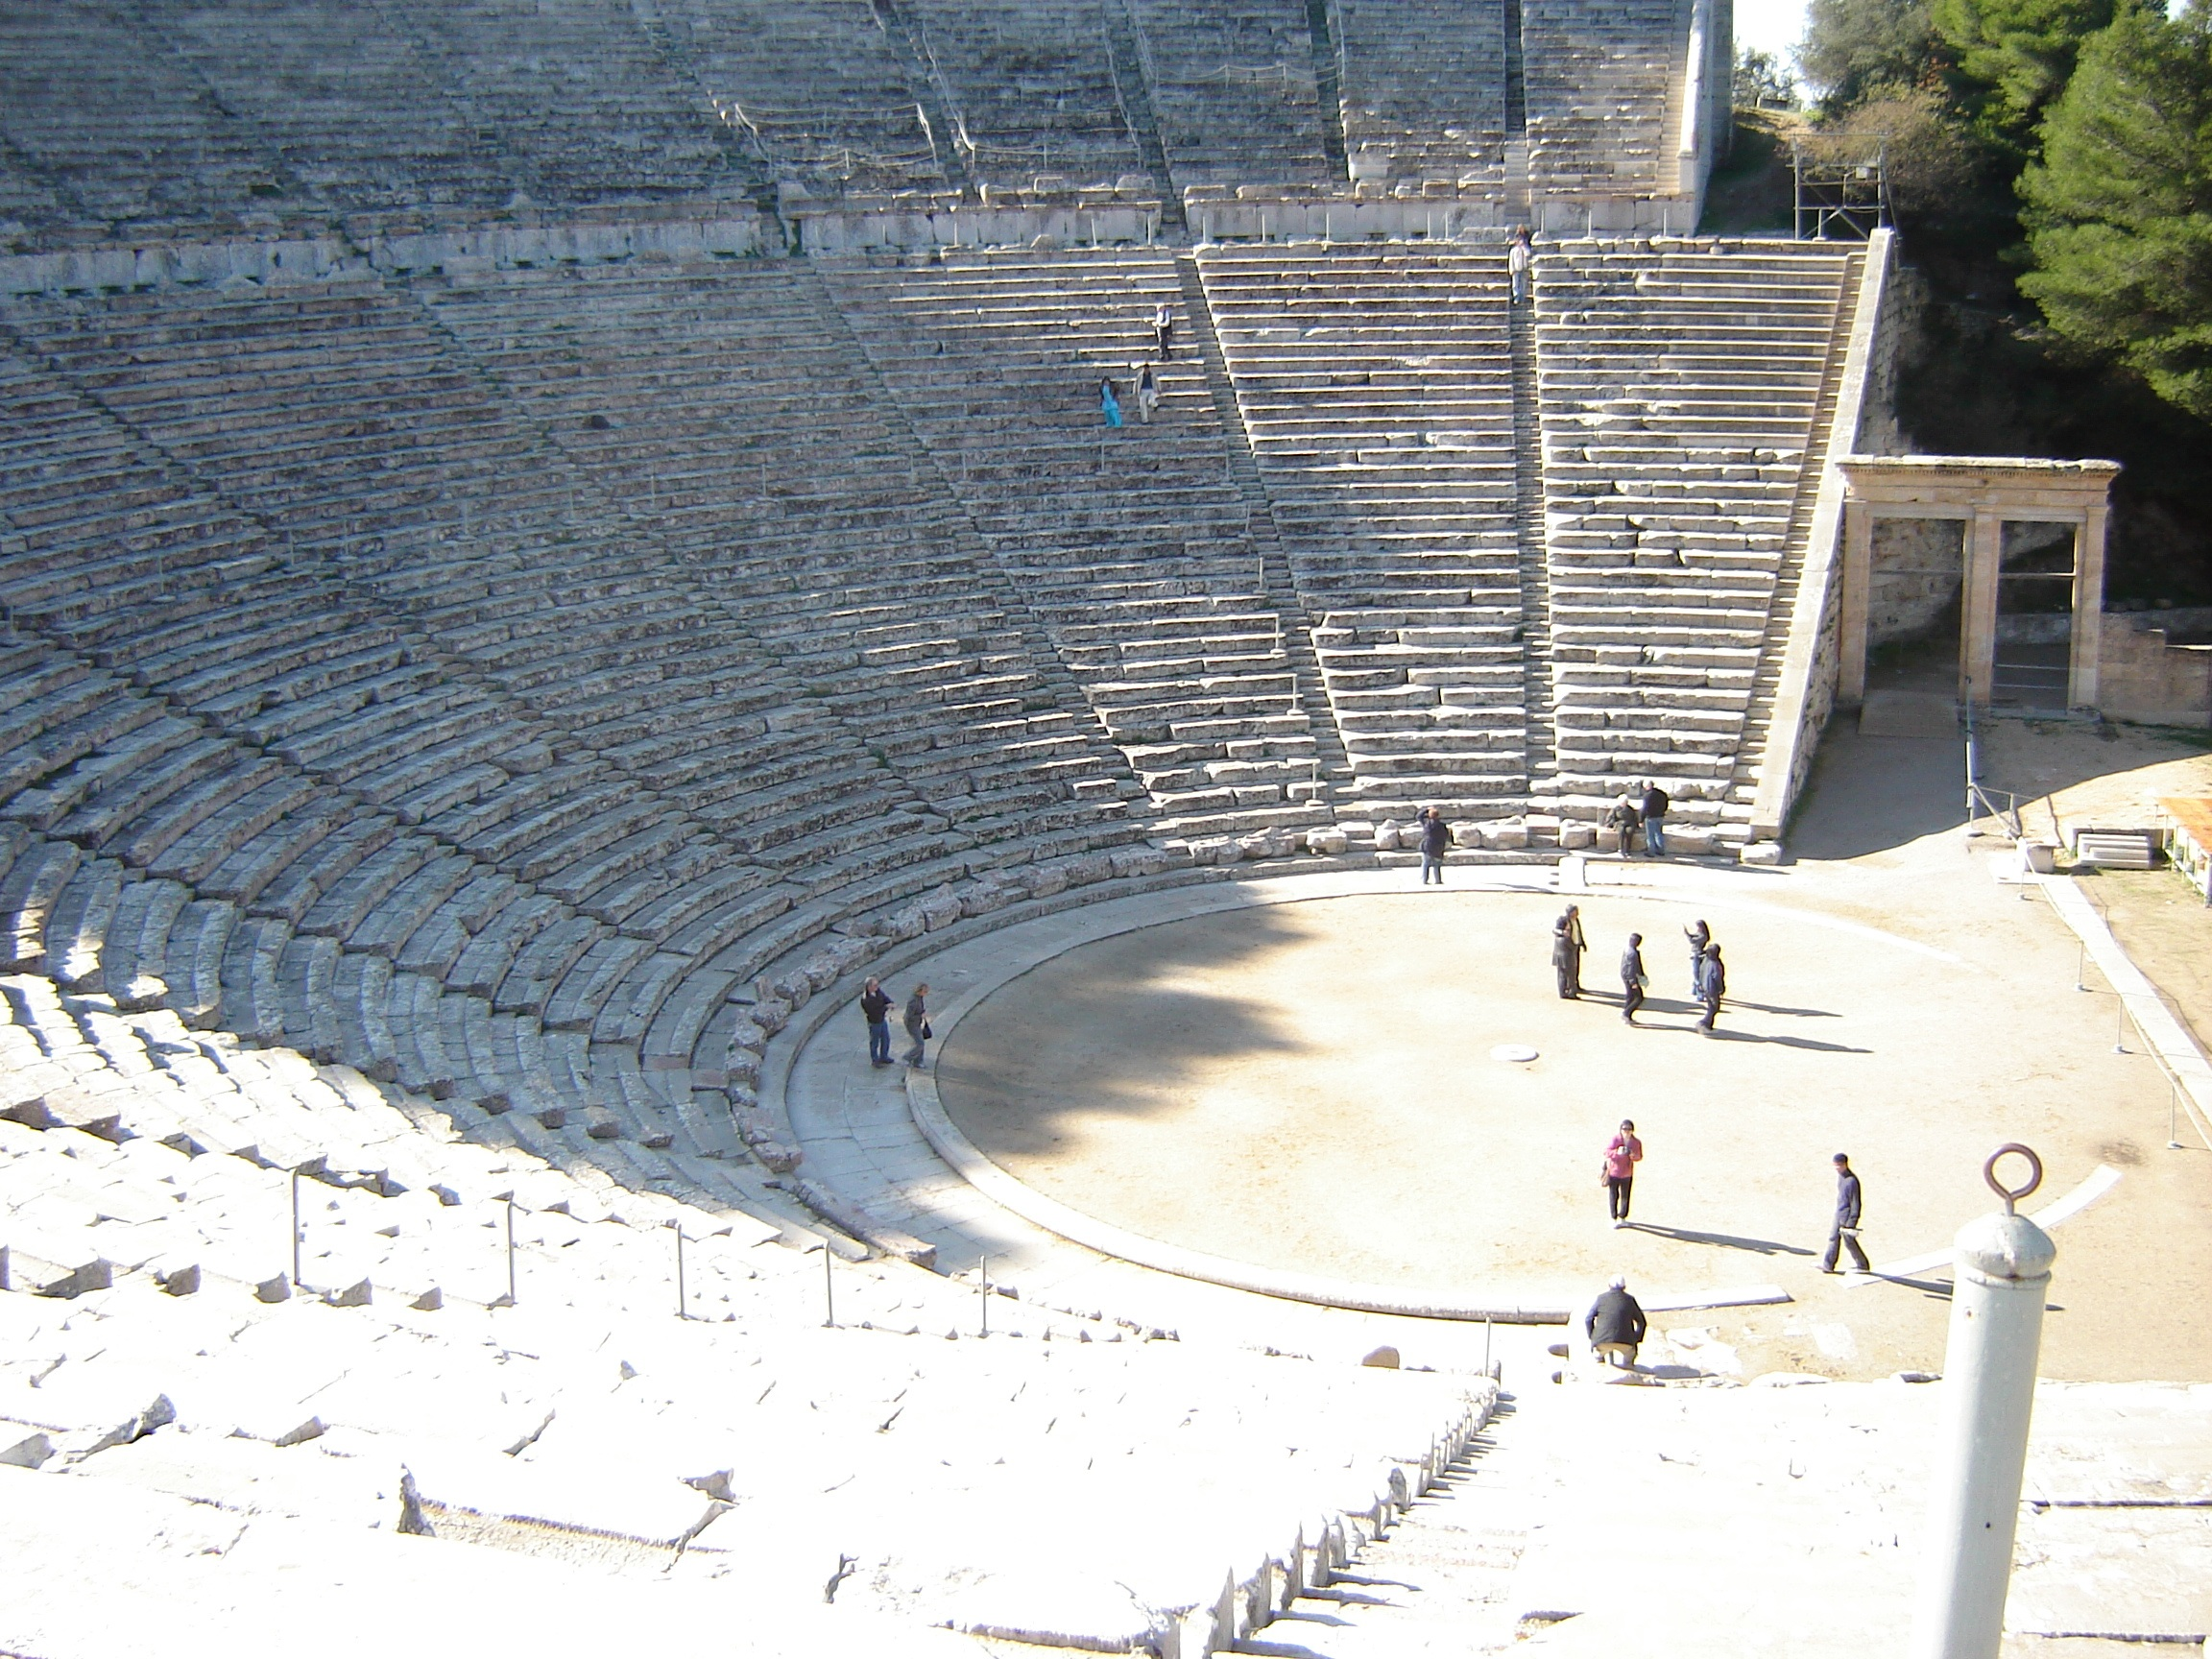 the characteristics of the theater and drama in ancient greece The ancient greek drama was a theatrical culture that flourished in ancient greece from c 700 bc the city-state of athens, which became a significant cultural, political, and military power during this period, was its center, where it was institutionalised as part of a festival called the dionysia, which honored the god dionysus.